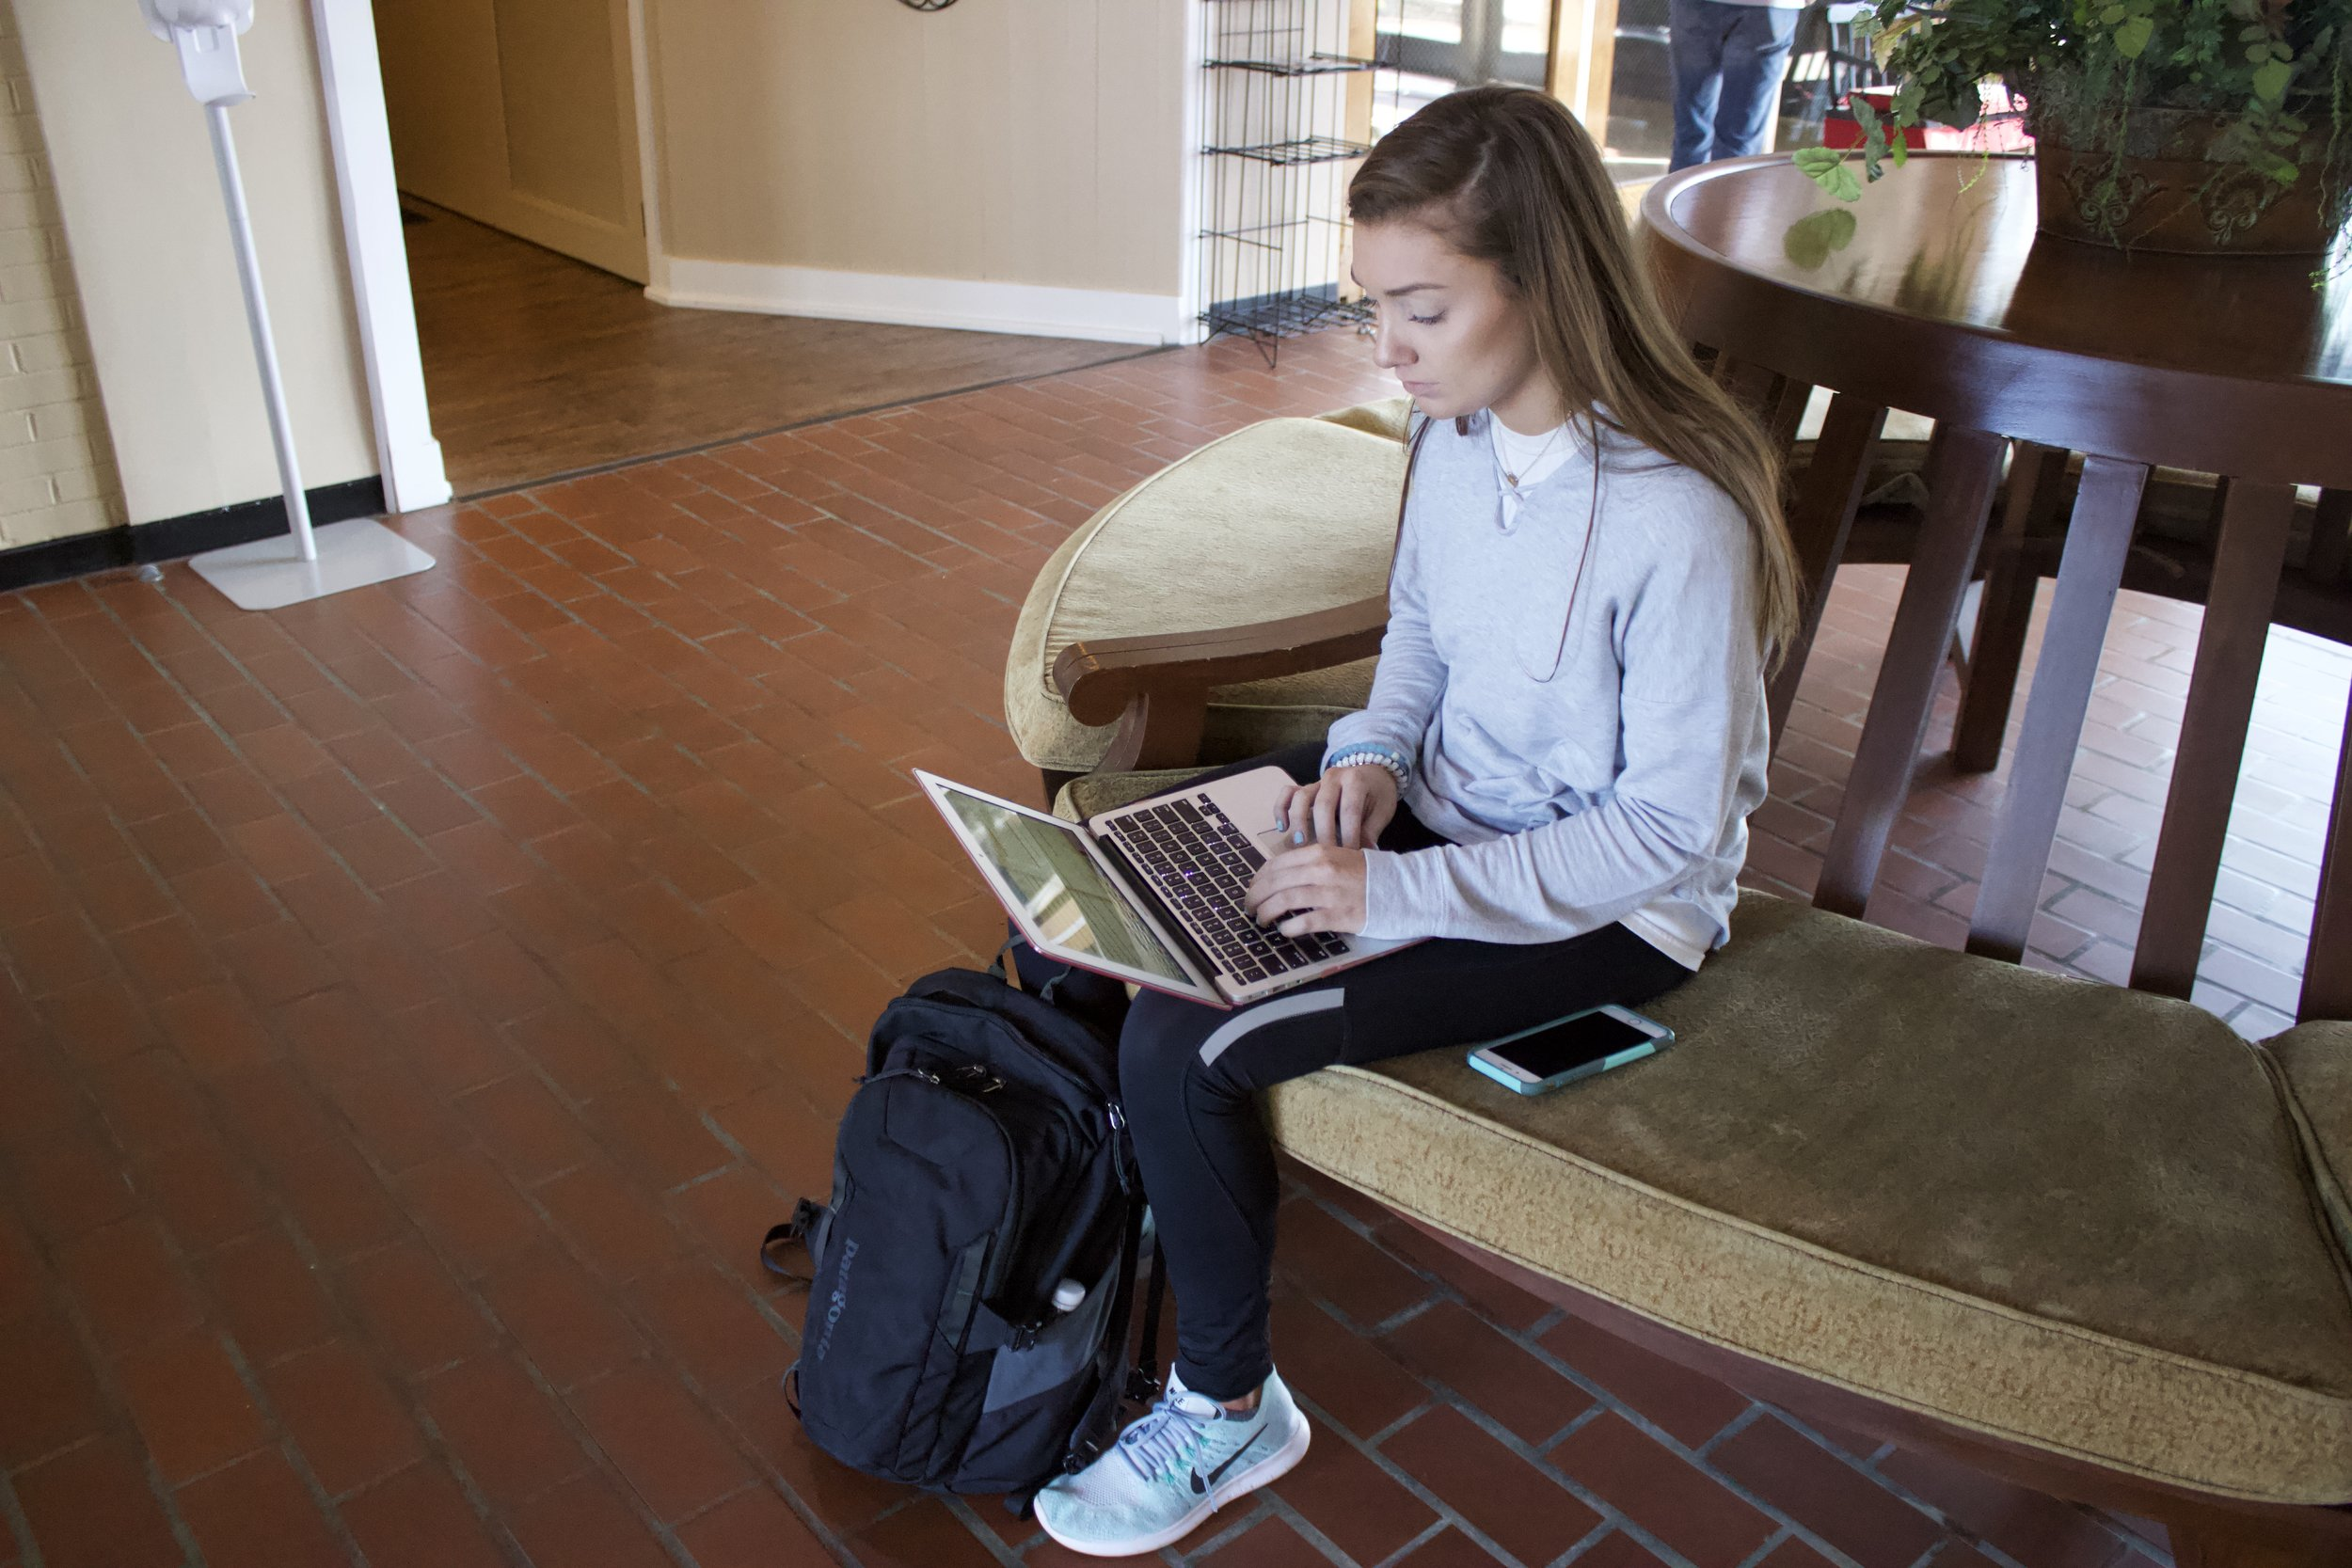 Sophomore Maddie Richardson adds the finishing touches to an essay before class.